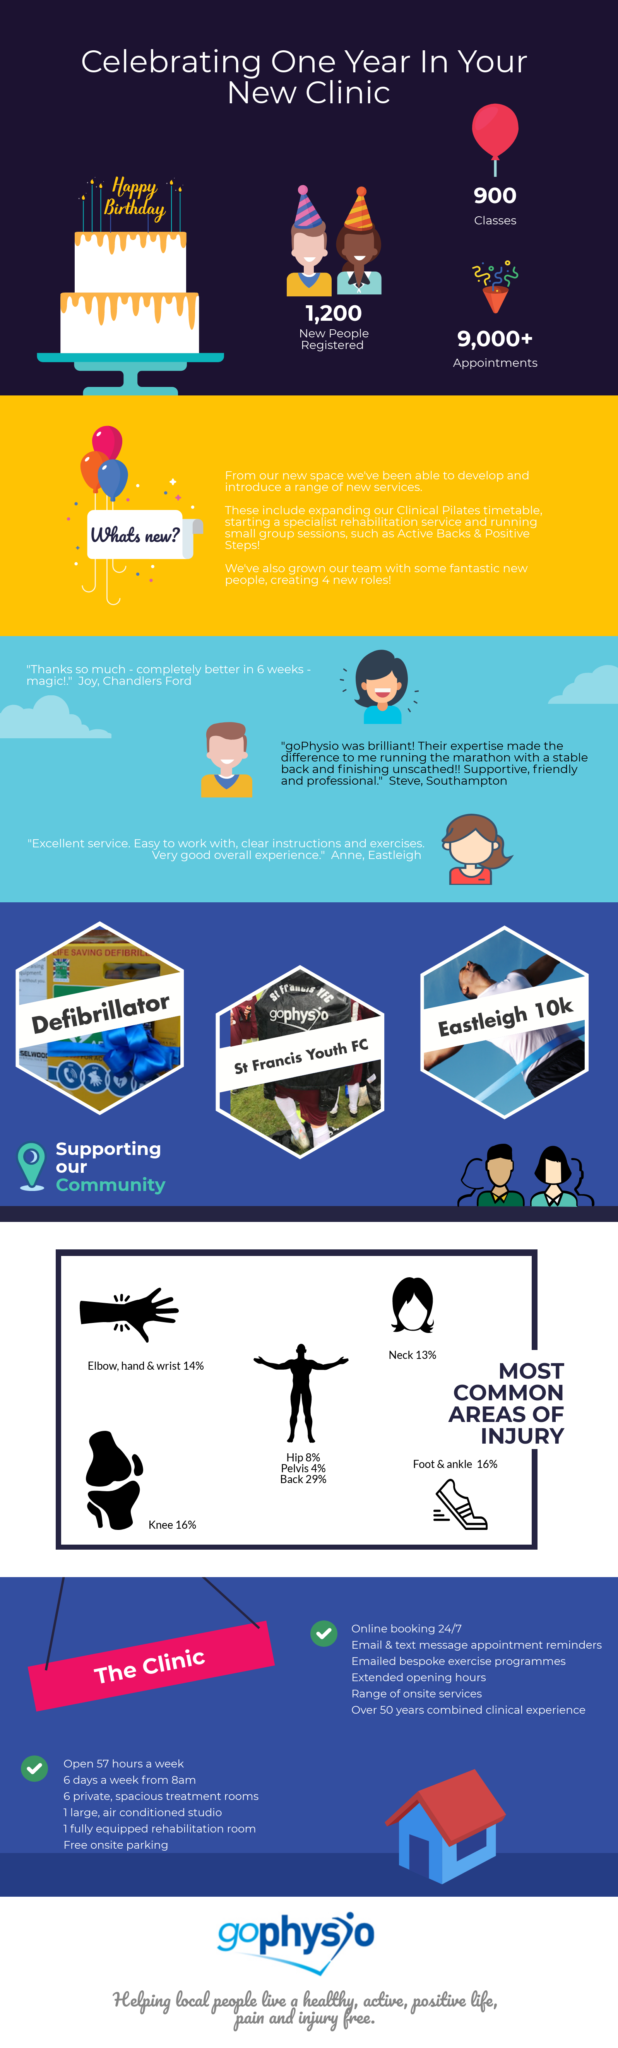 1 year in new clinic infographic